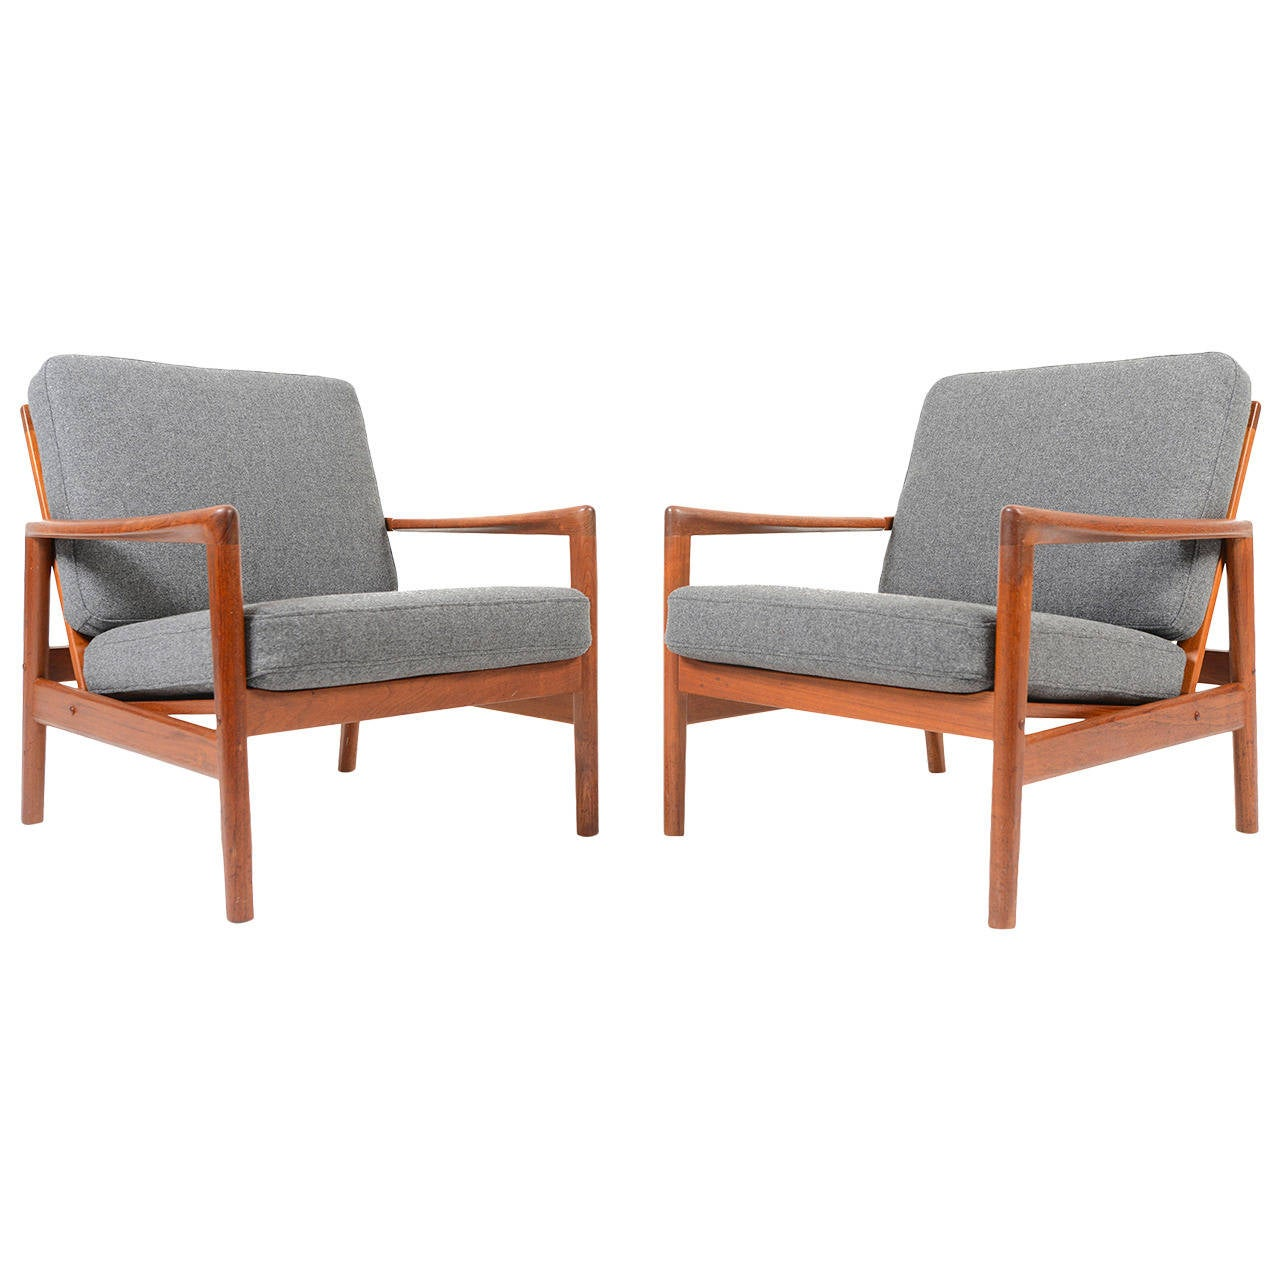 Pair Of Danish Modern Teak Lounge Chairs In Grey Wool At